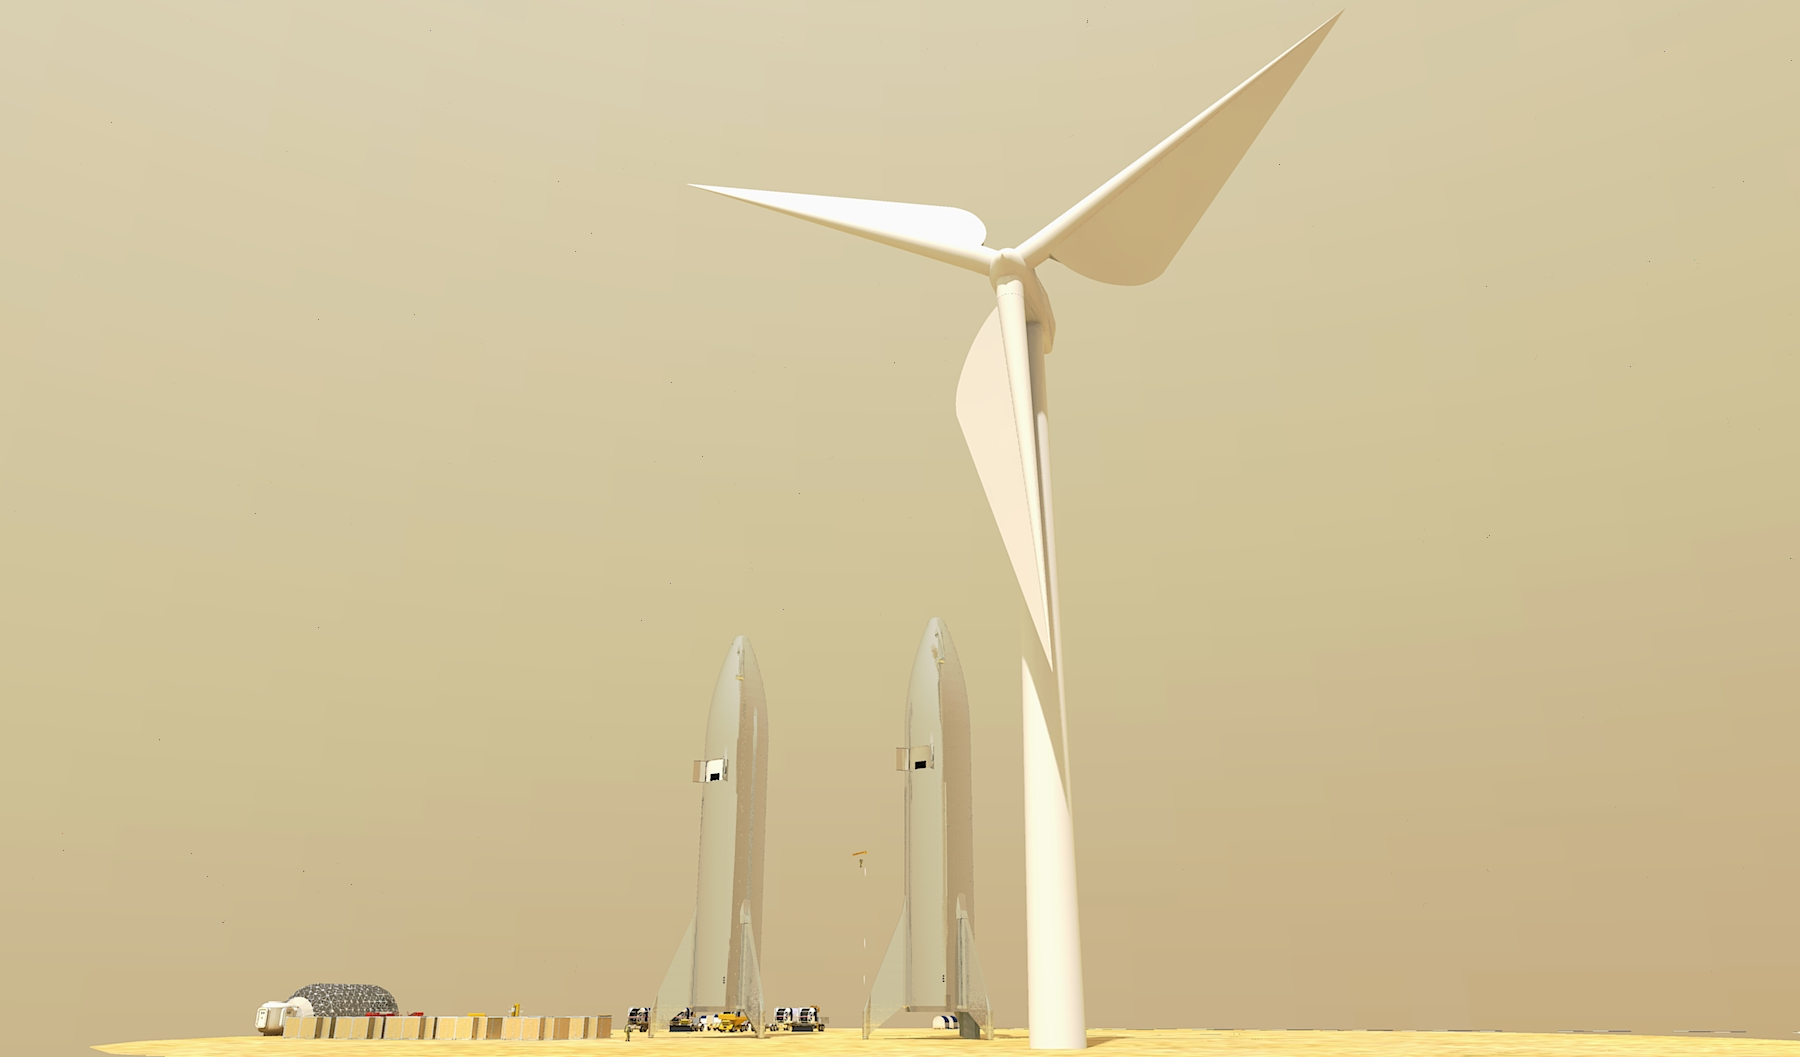 Mars wind power